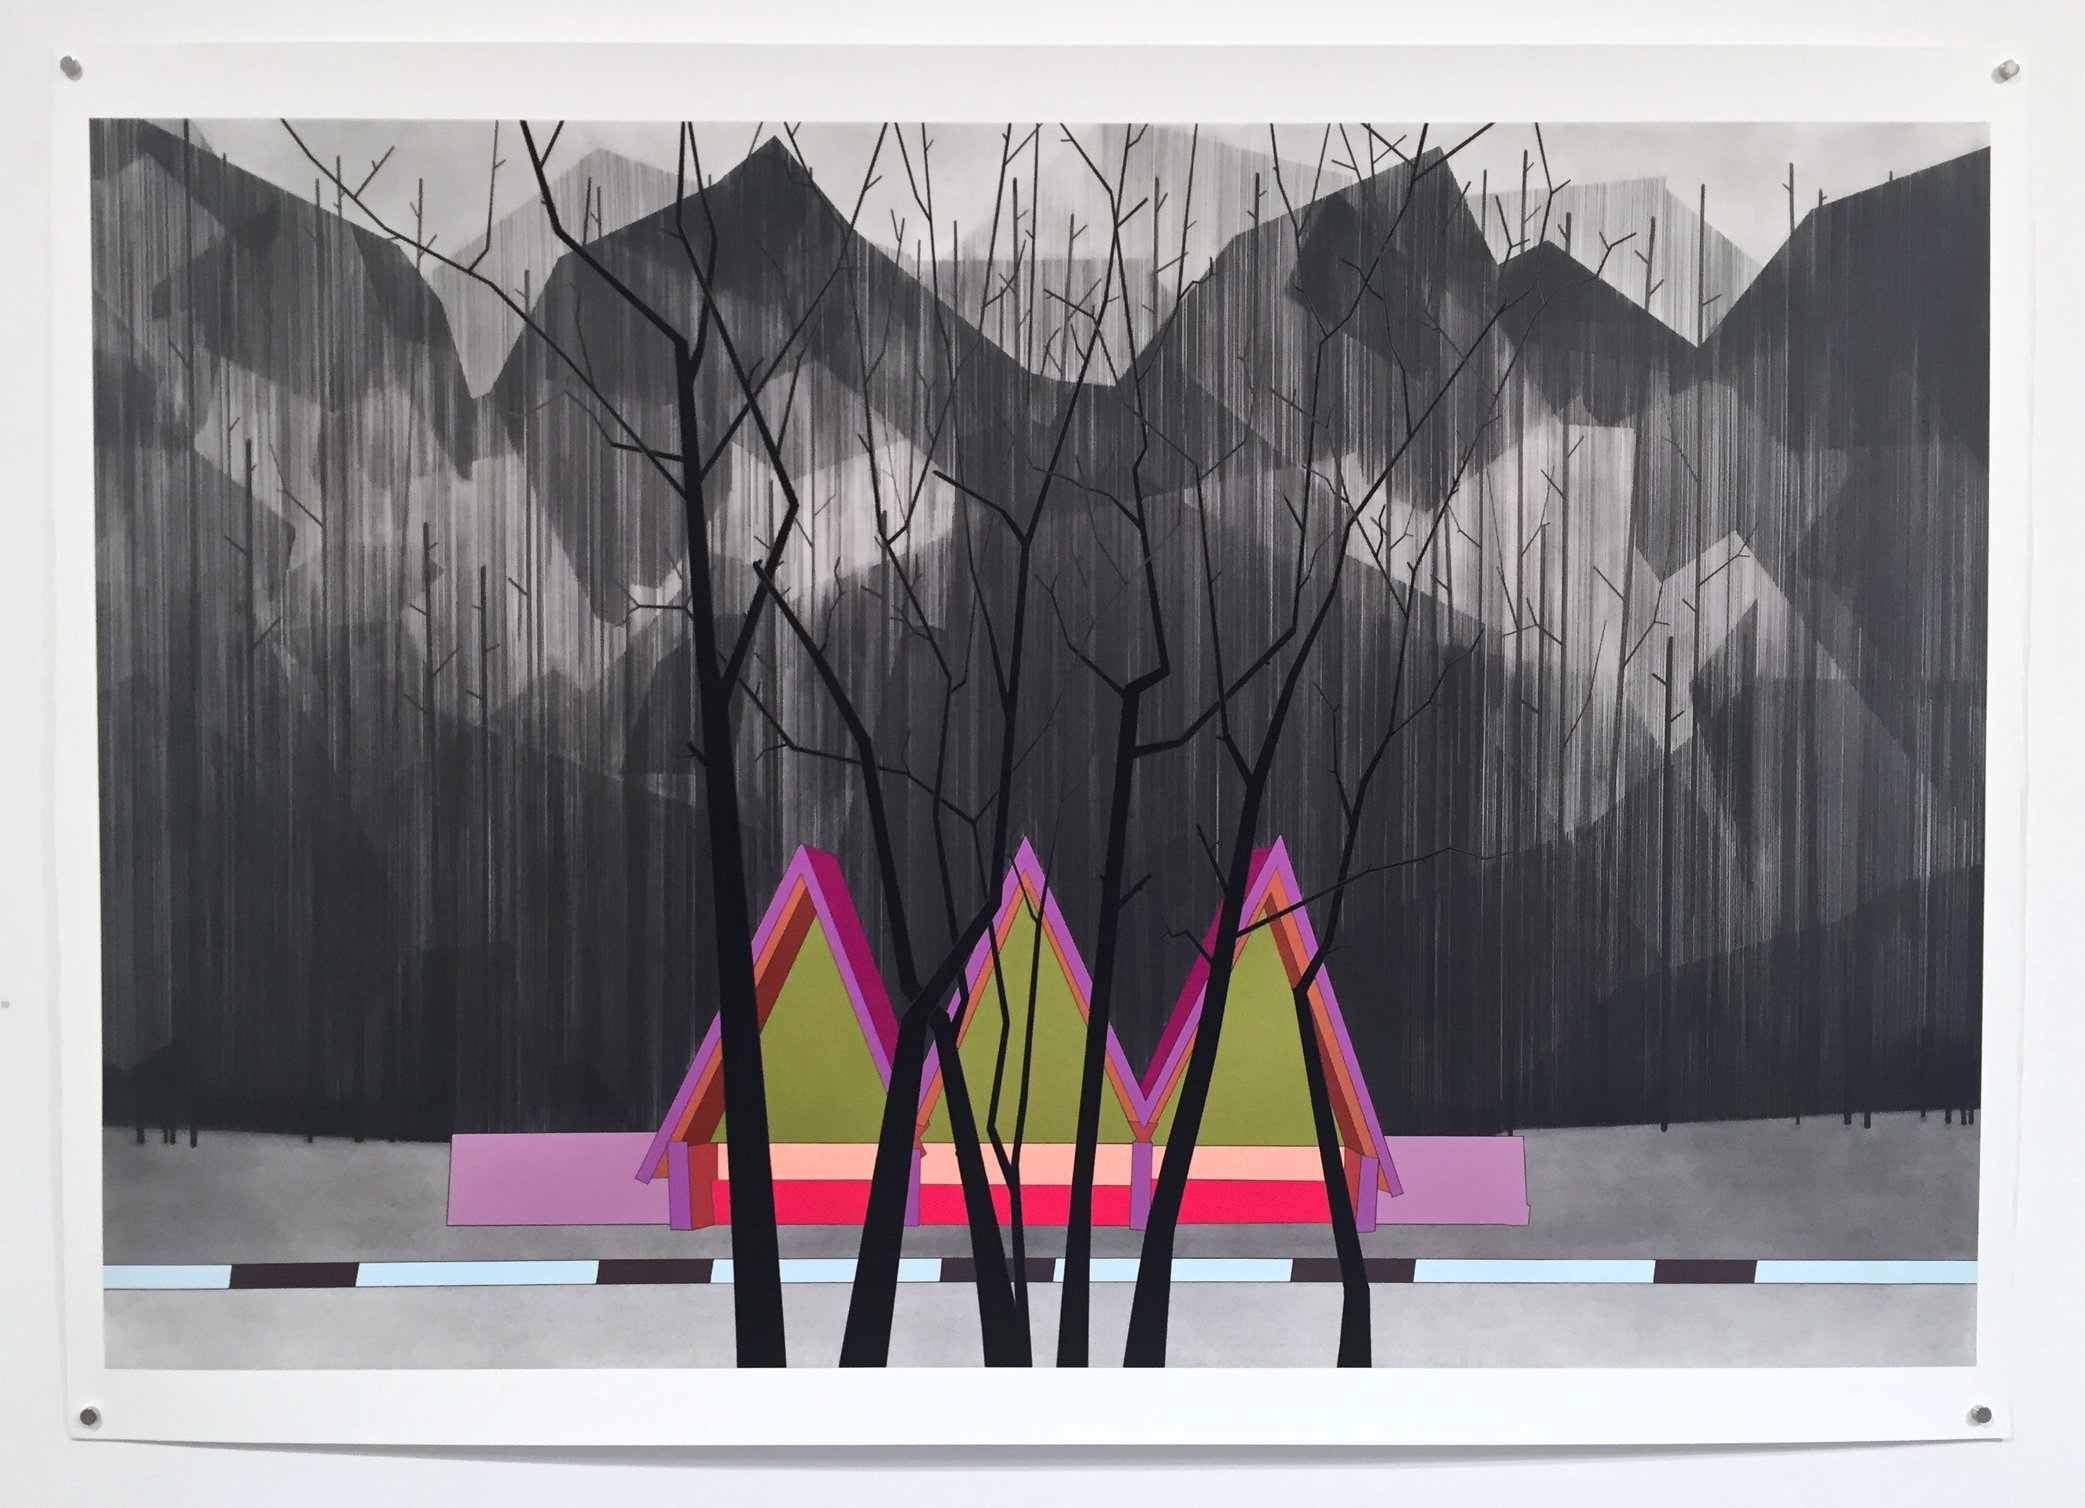 Yes, 2015, gouache and graphite on paper, 38 x 57""